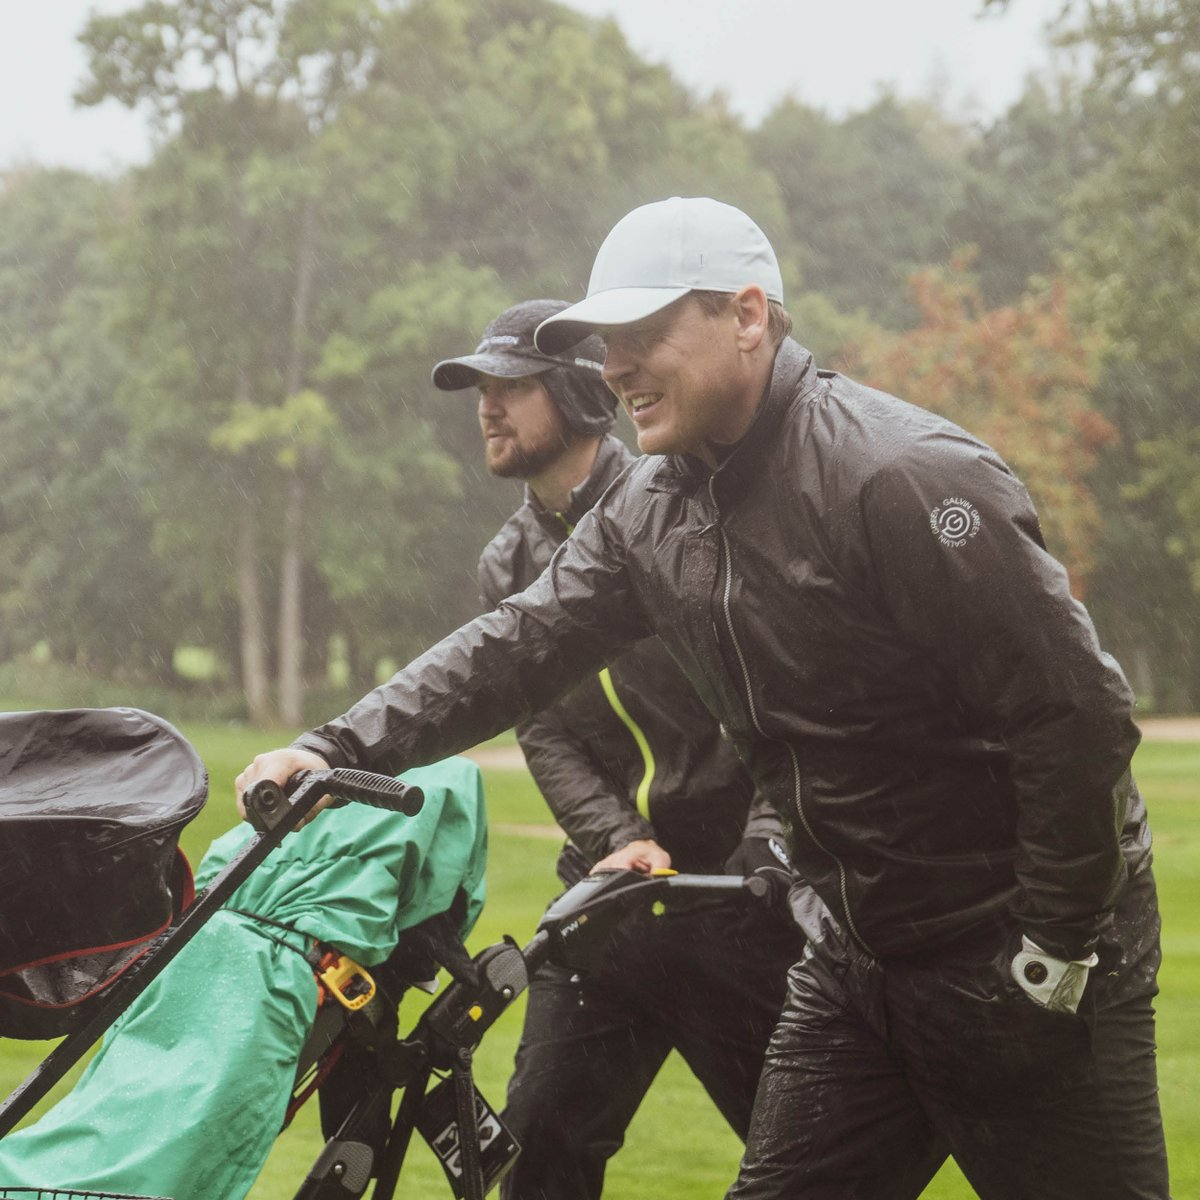 DESIGNED BY GOLFERS FOR GOLFERS - When it comes to product testing, we take it to the extreme. #galvingreenmoment